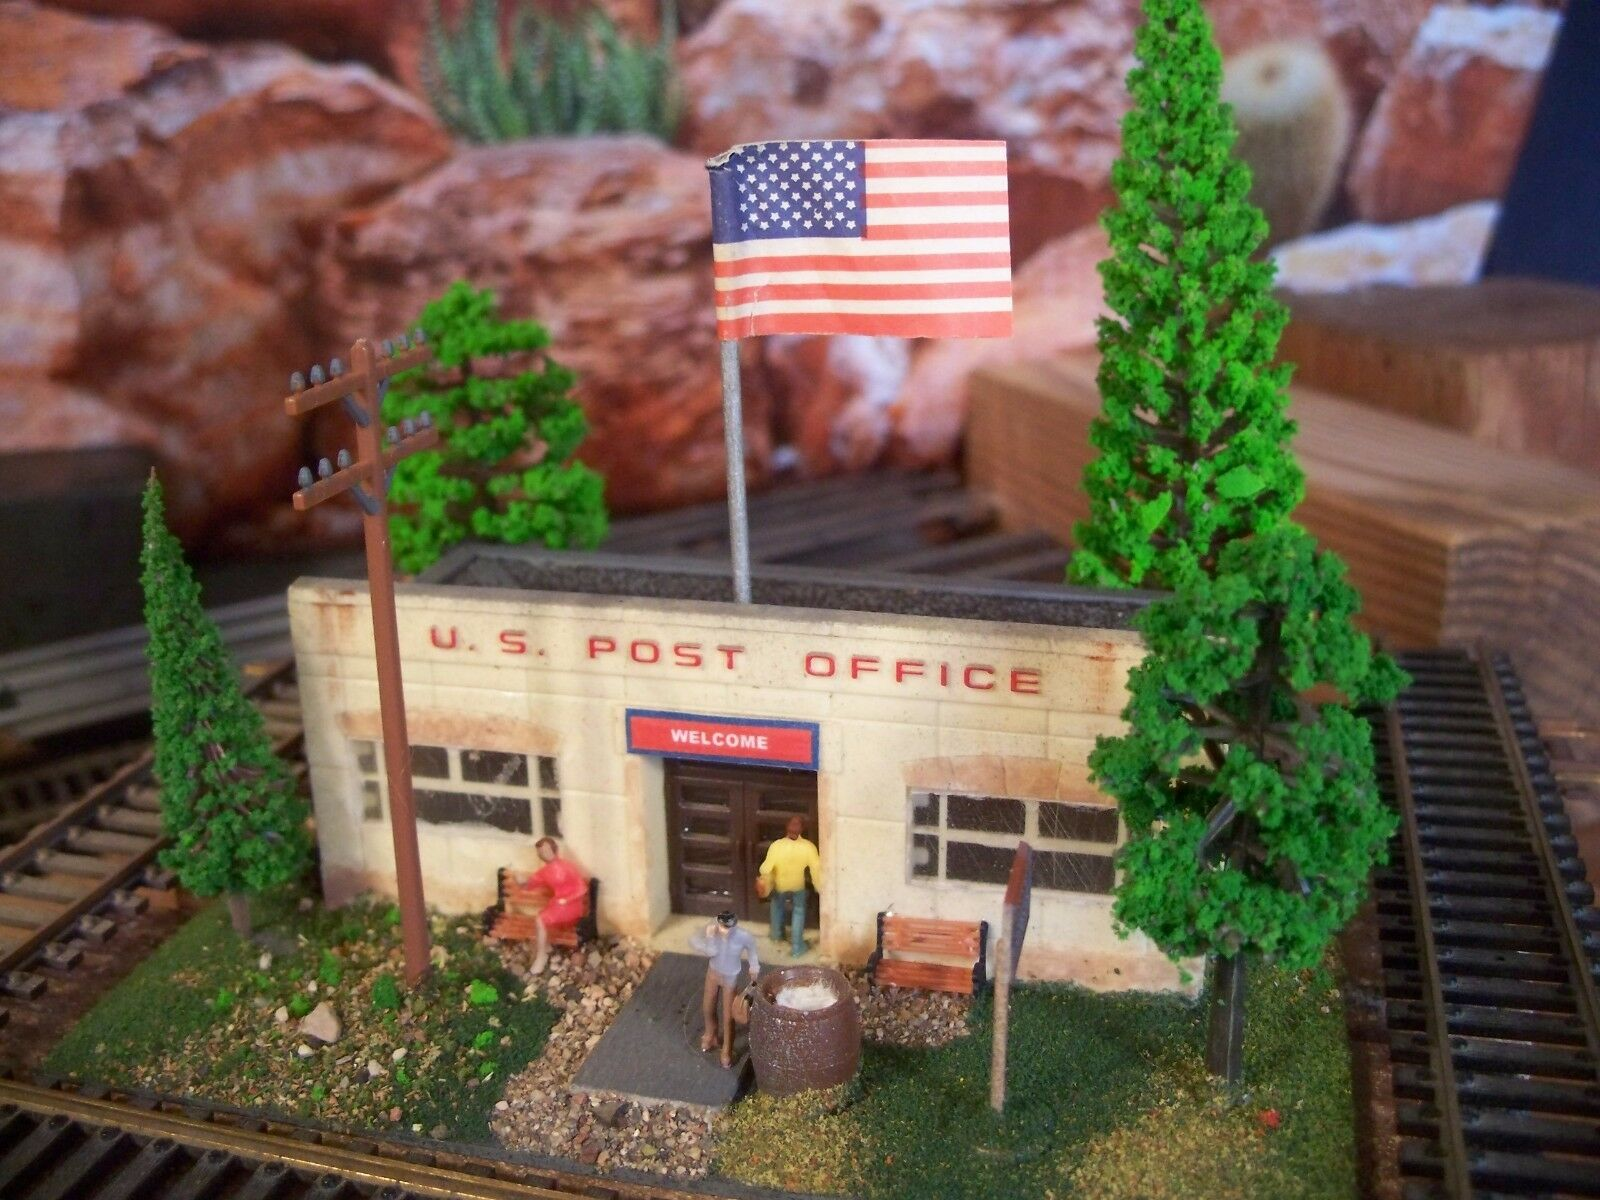 HO WEATHERED ASSEMBLED DETAILED BUILT-UP U.S. POST OFFICE DIORAMA STORE BUILDING